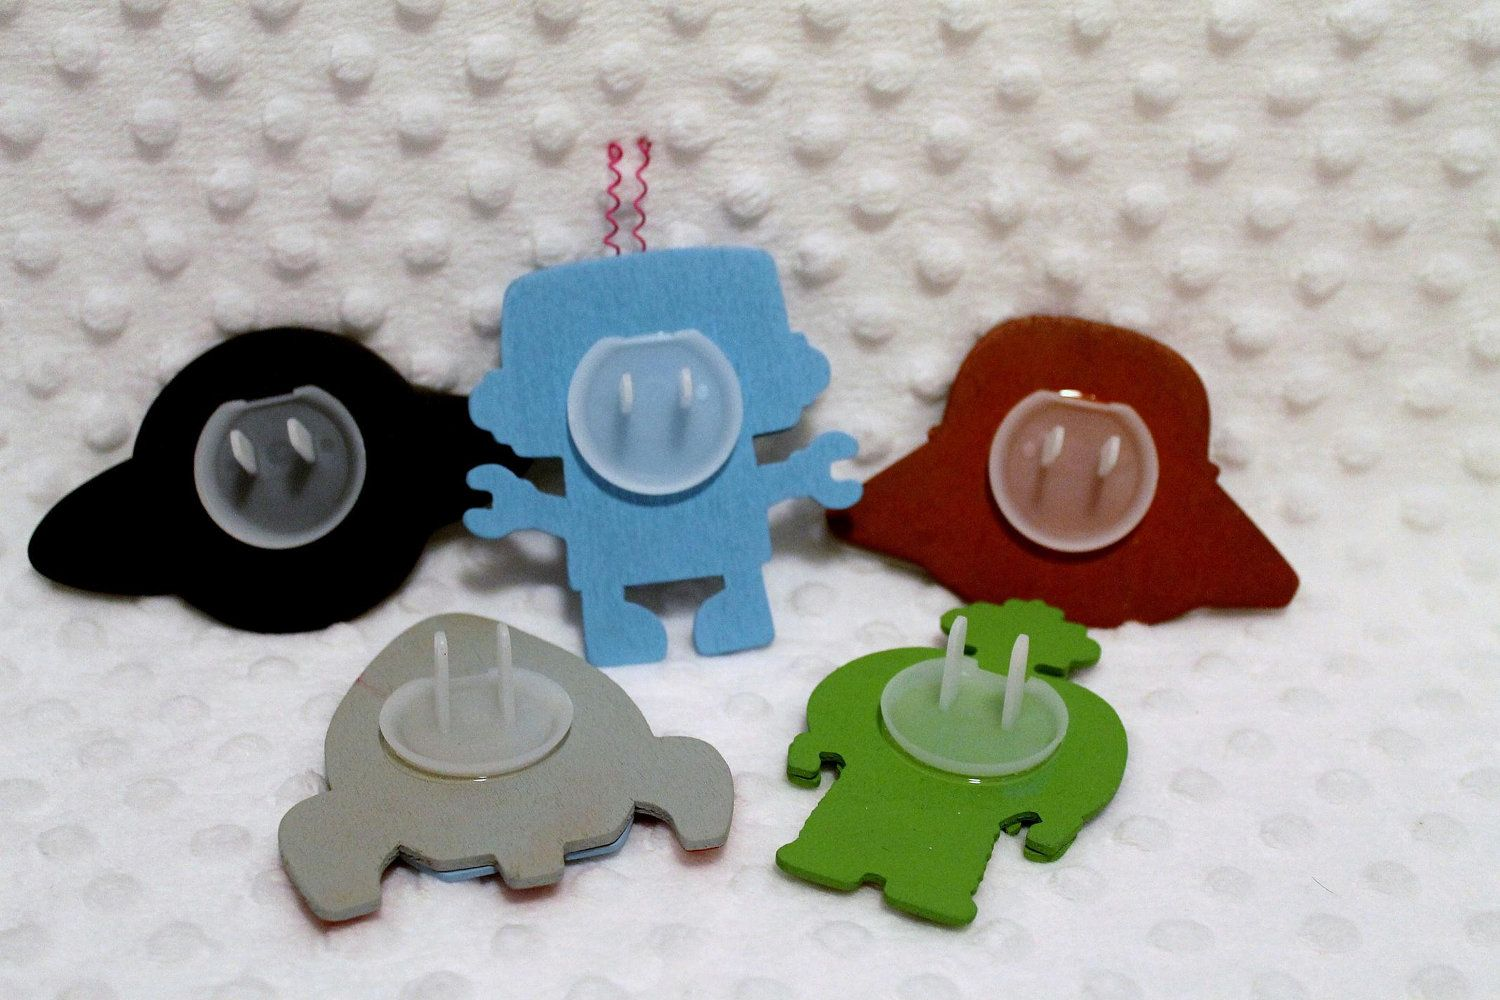 Outlet Decoration Decorative Outlet Socket Covers Robots And Spaceships Set